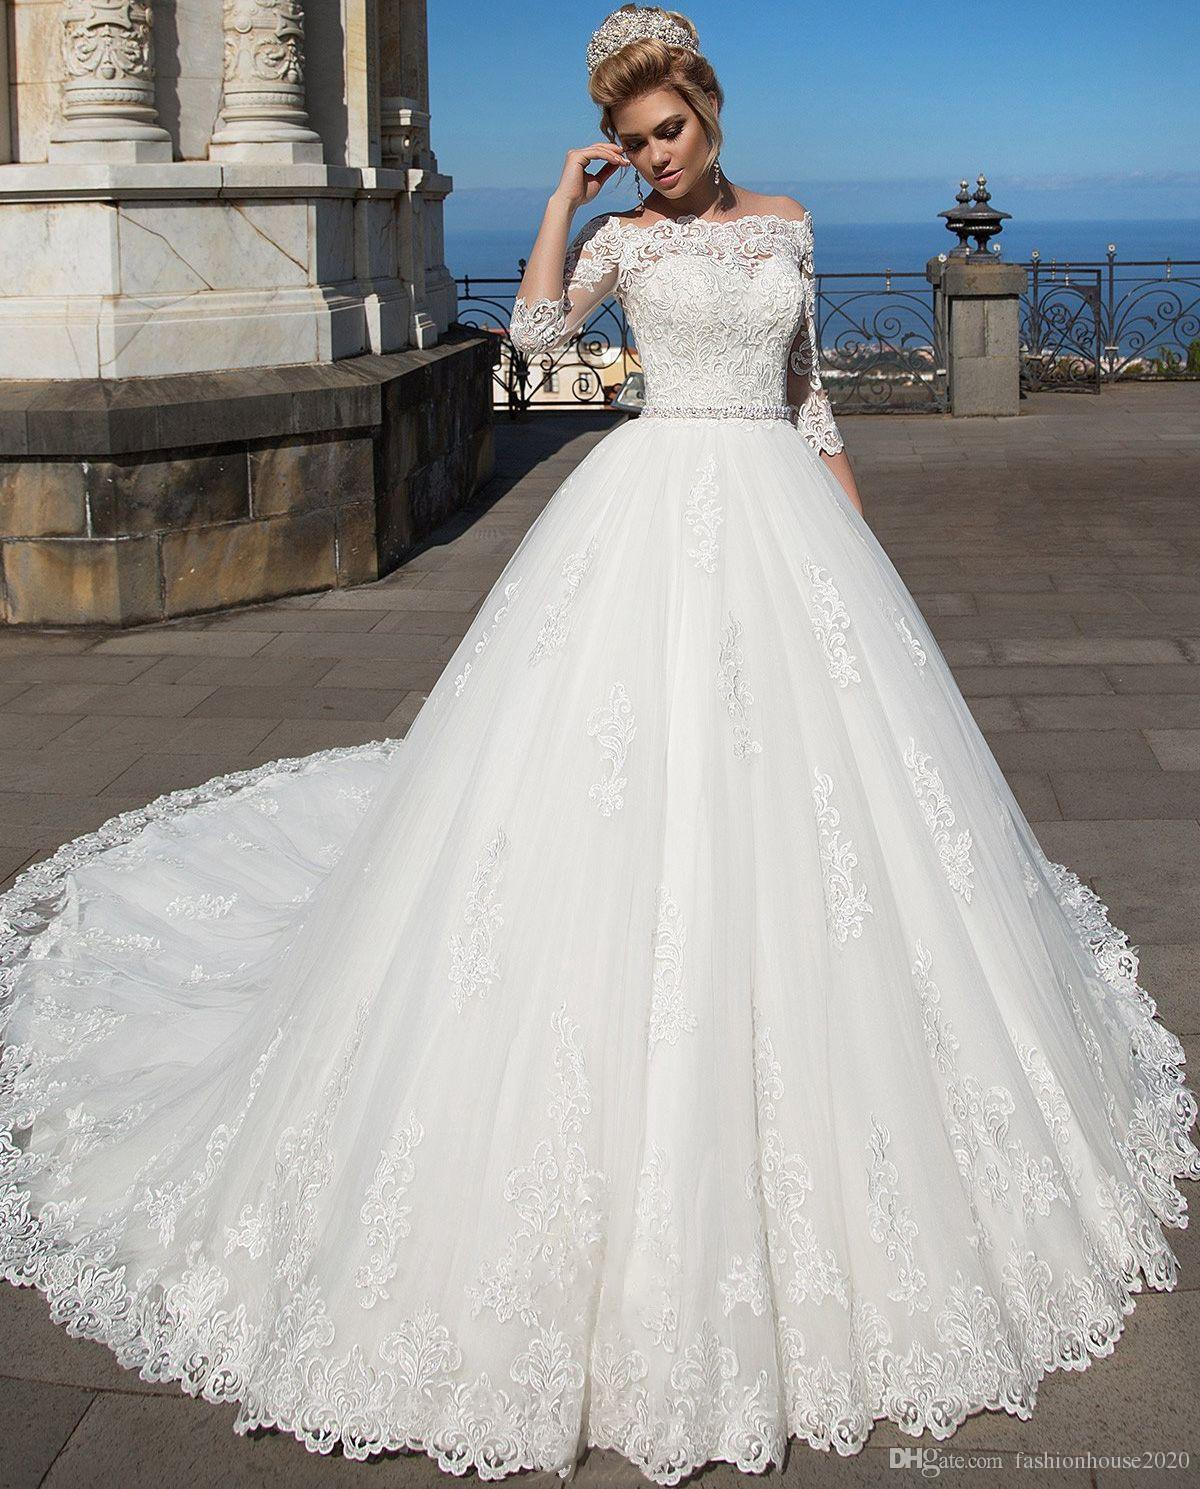 2018 Cheap Elegant White Lace Ball Gown Wedding Dresses With Sleeves Off  The Shoulder Princess Plus Size Wedding Dress Bridal Gowns Custom Wedding  Dress ...